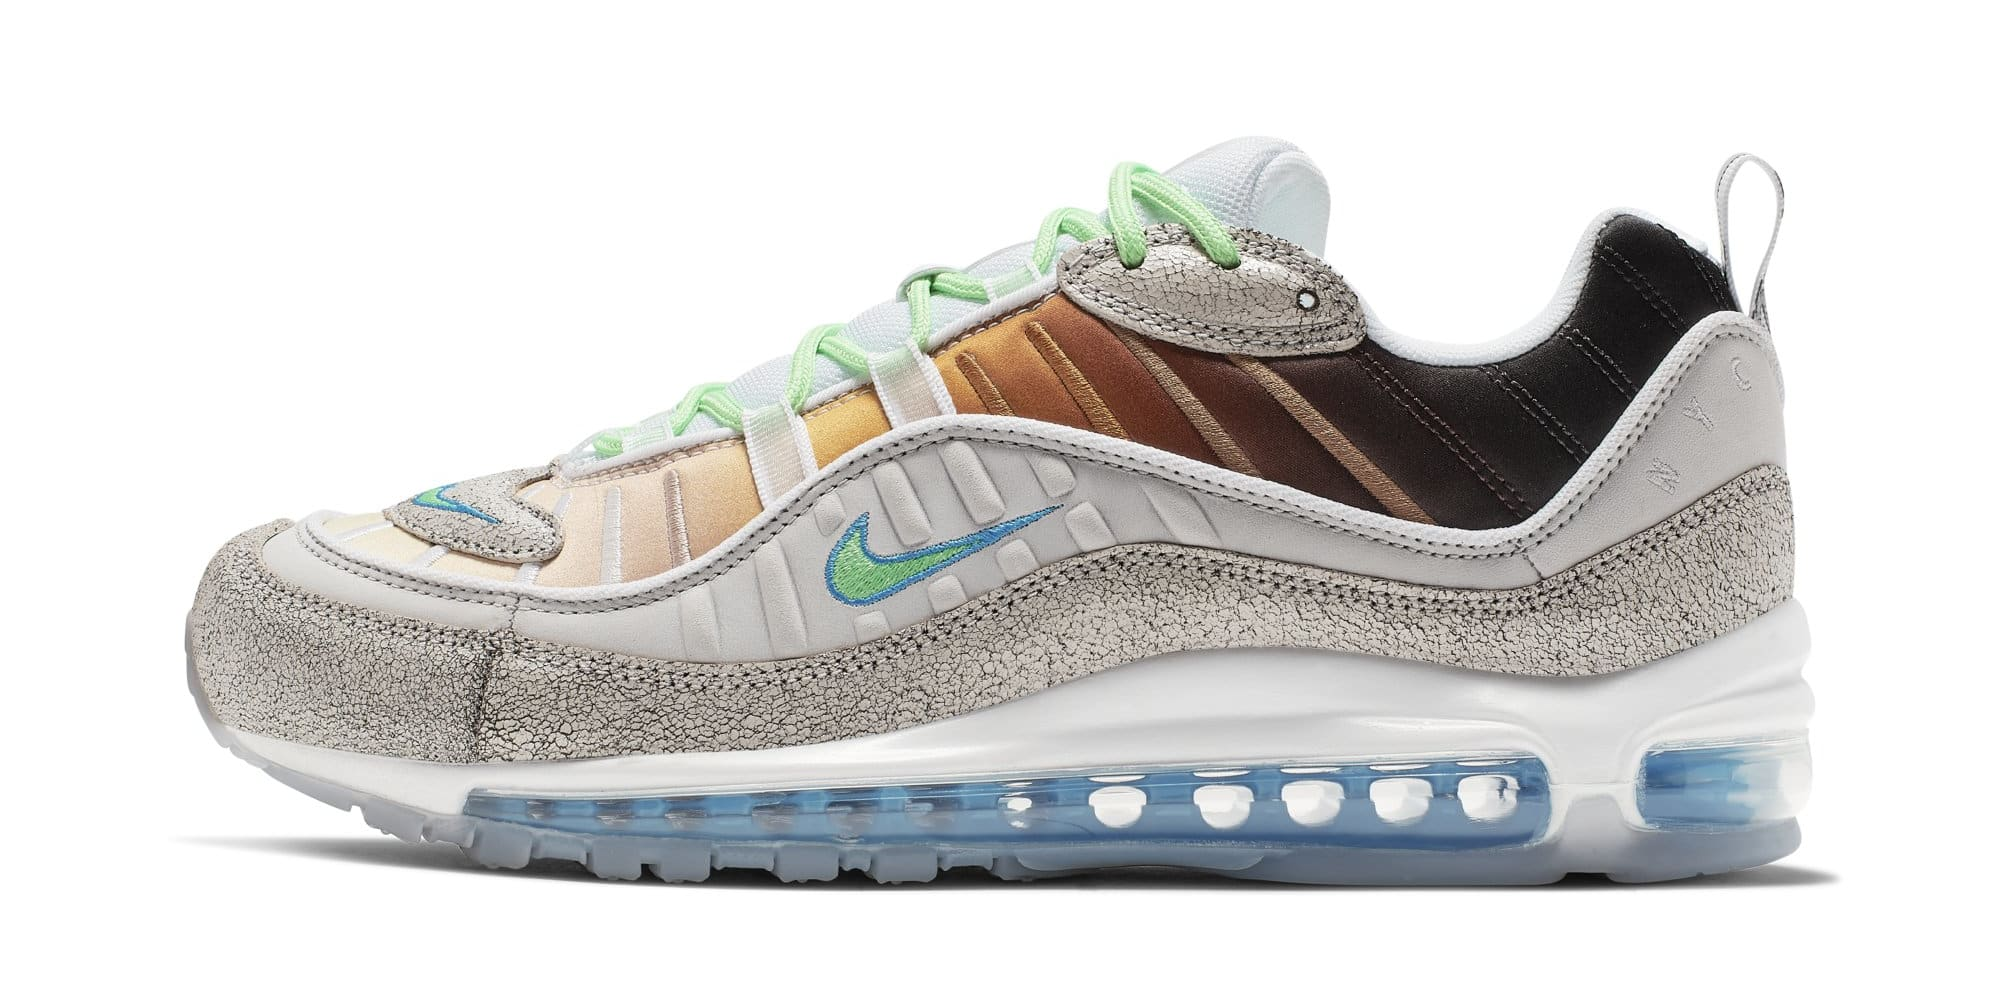 Nike Air Max 98 'La Mezcla' CI1502-001 (Lateral)